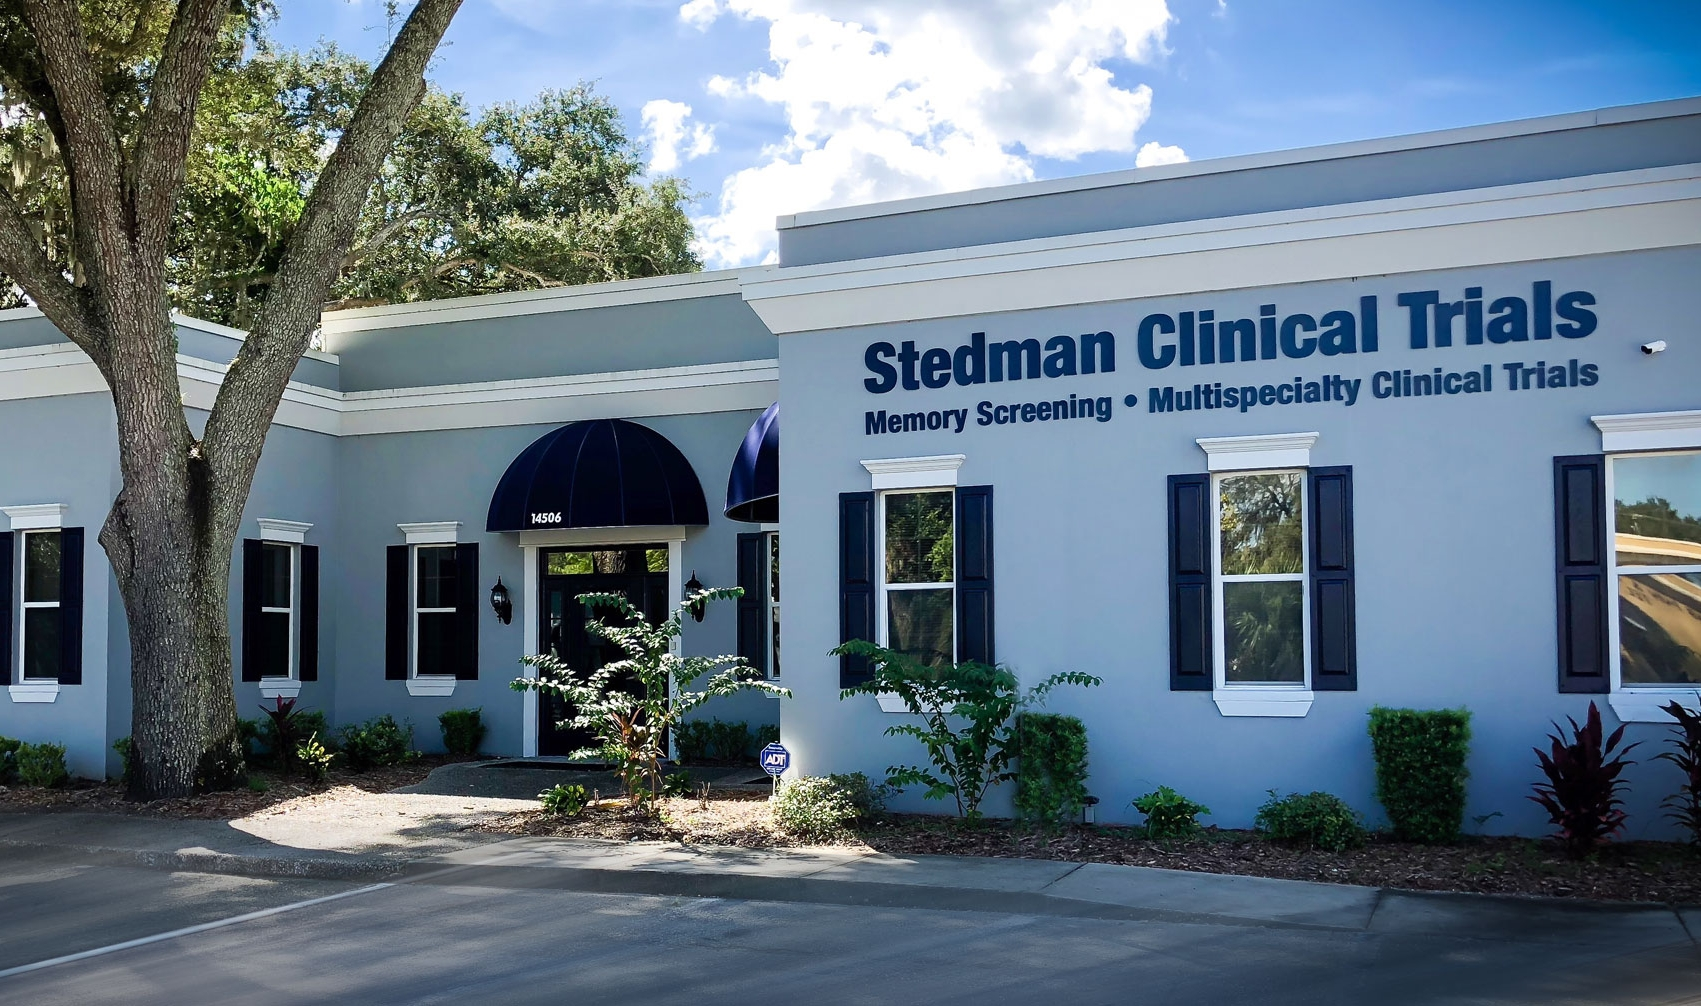 How To Find Us - Located near the intersection of Bruce B. Downs Blvd. and Skipper Rd. Our location offers easy access to patients traveling from I-75, I-275 or I-4.